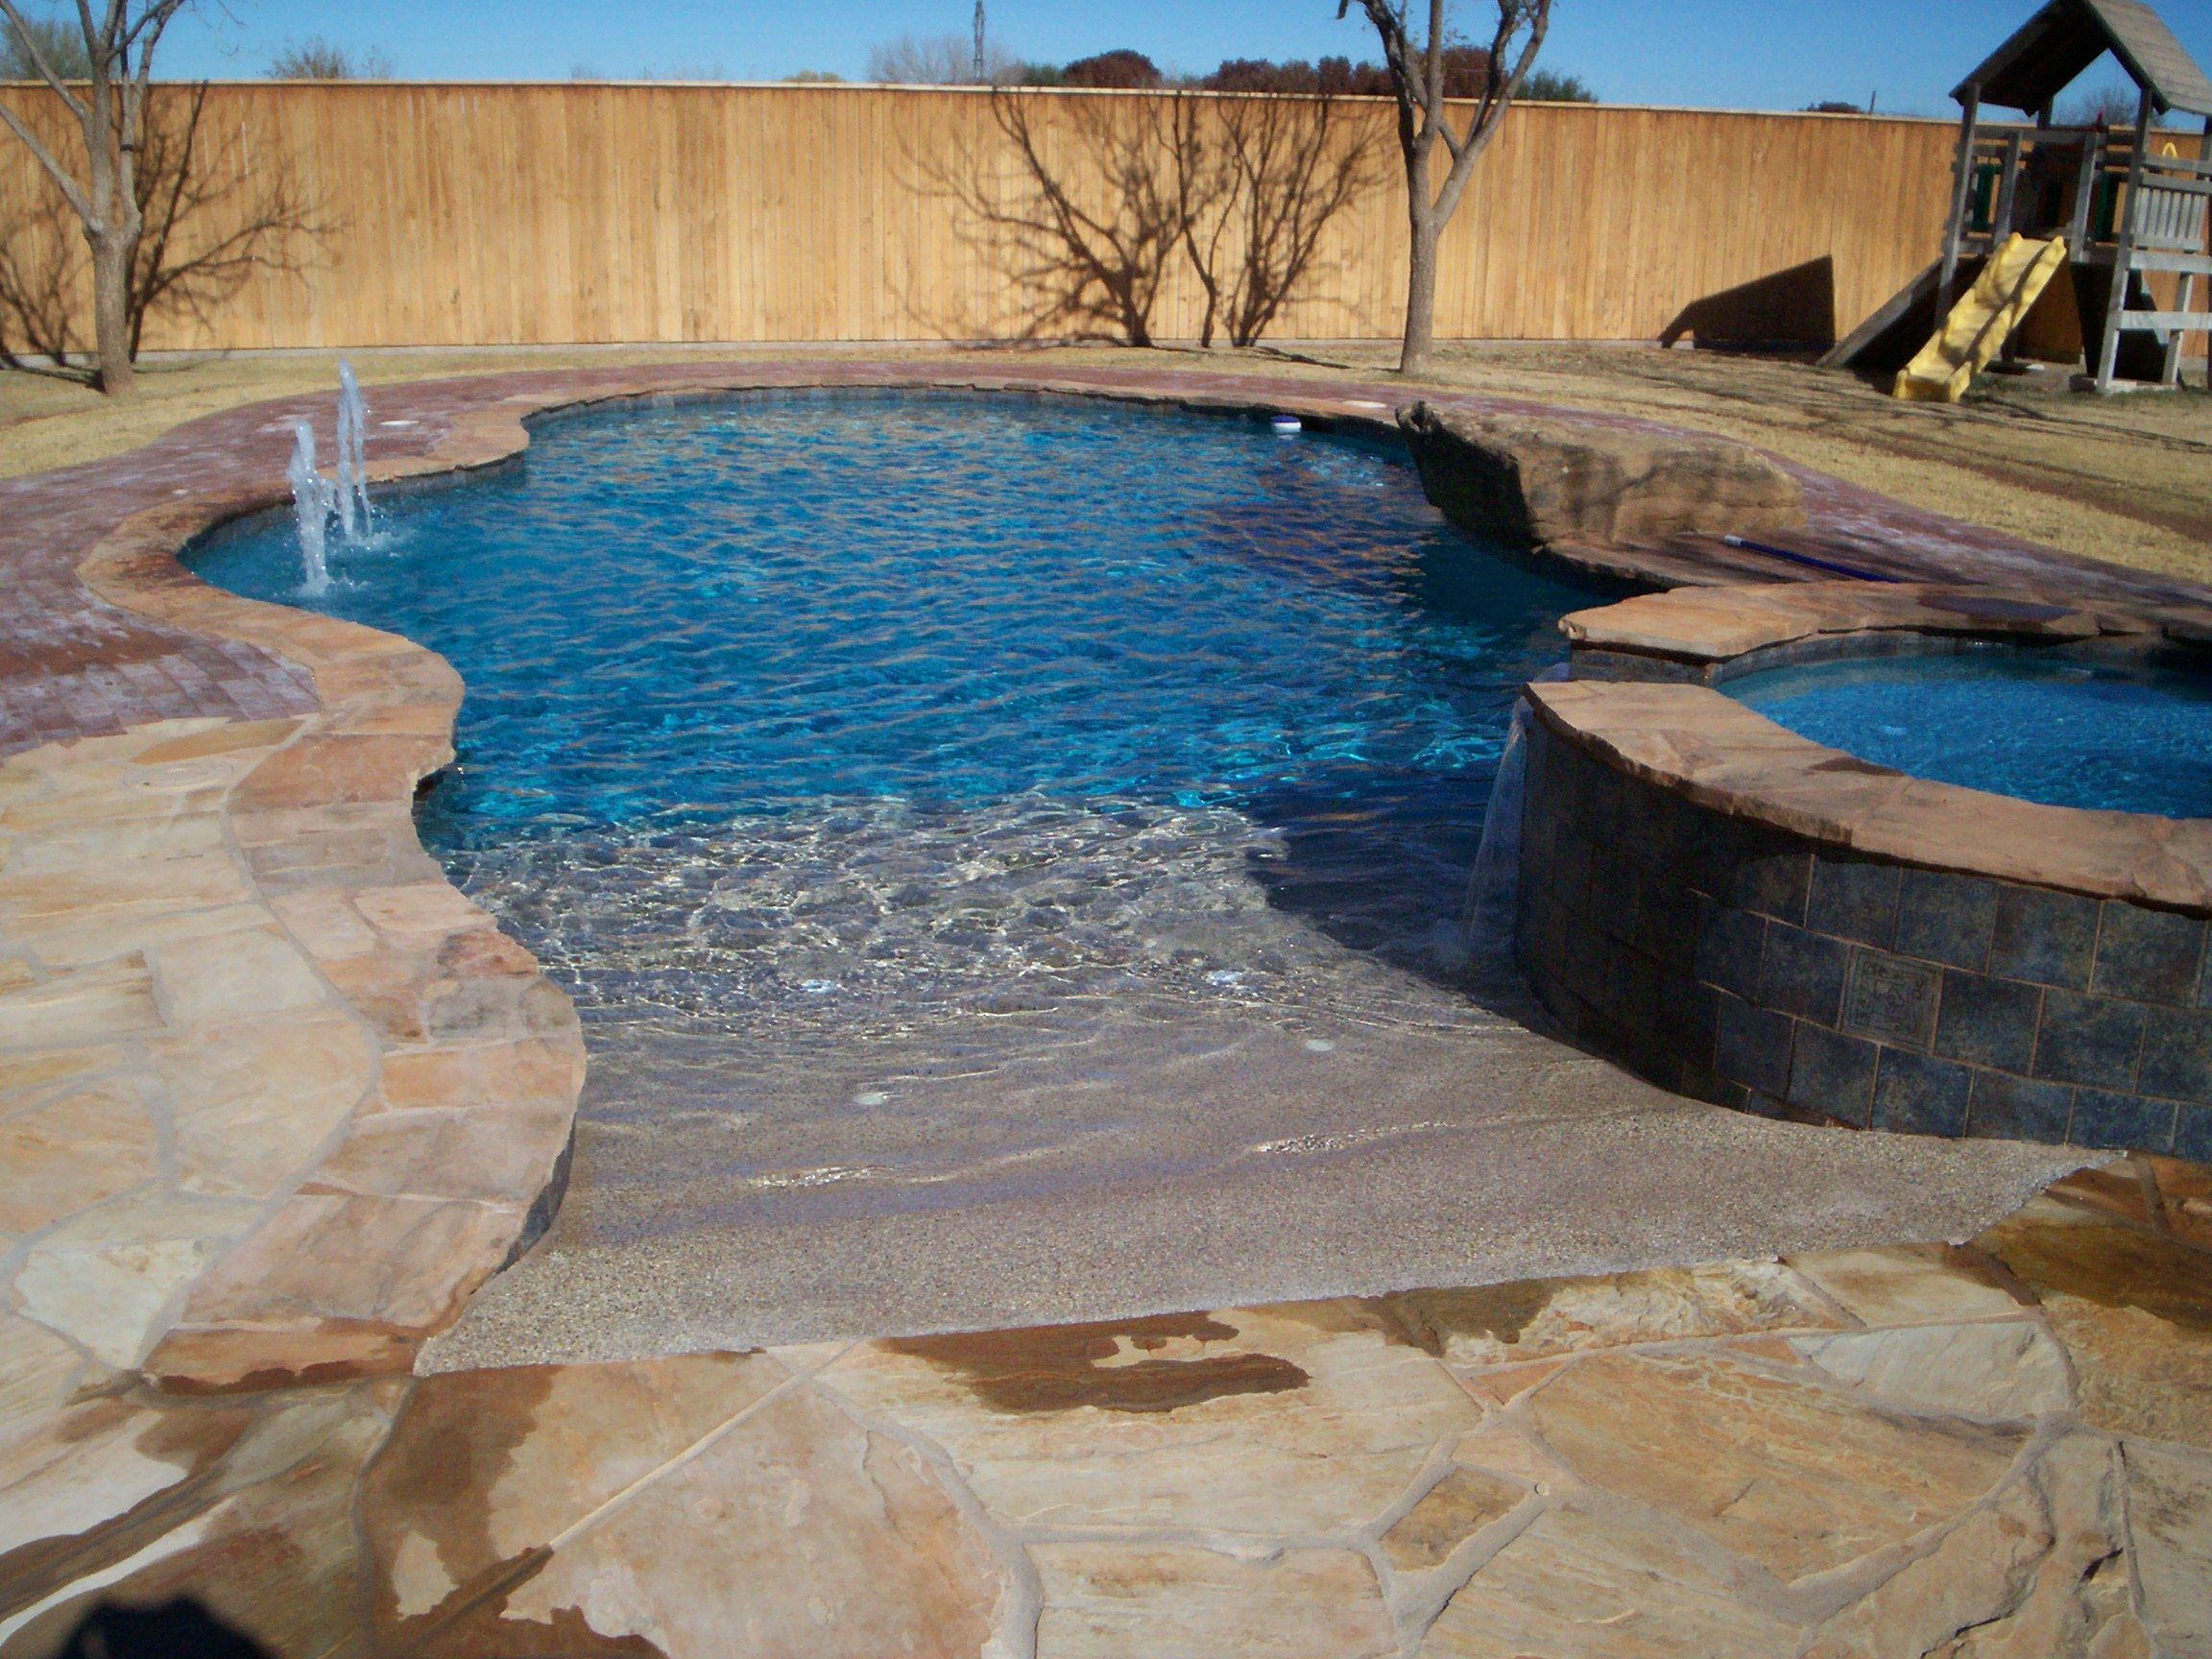 Beach Entry Pools Benches The Pool Is Plastered In Hawaiian Blue The Pool Deck Is Old My